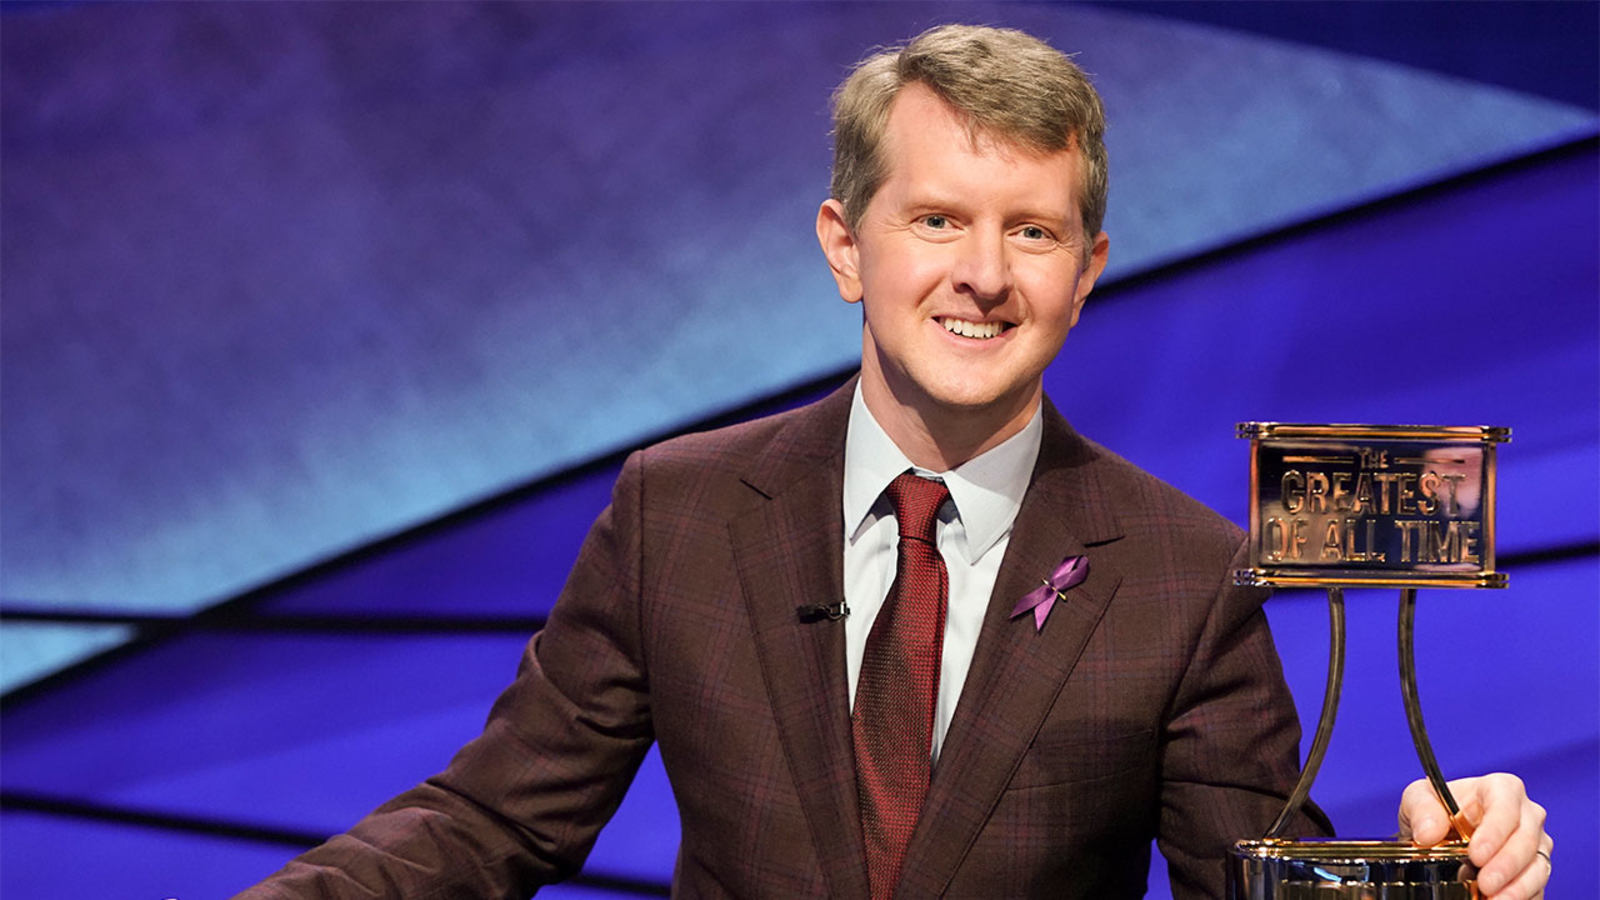 Ken Jennings to guest-host 'Jeopardy!' as production resumes after Alex  Trebek's passing - 6abc Philadelphia